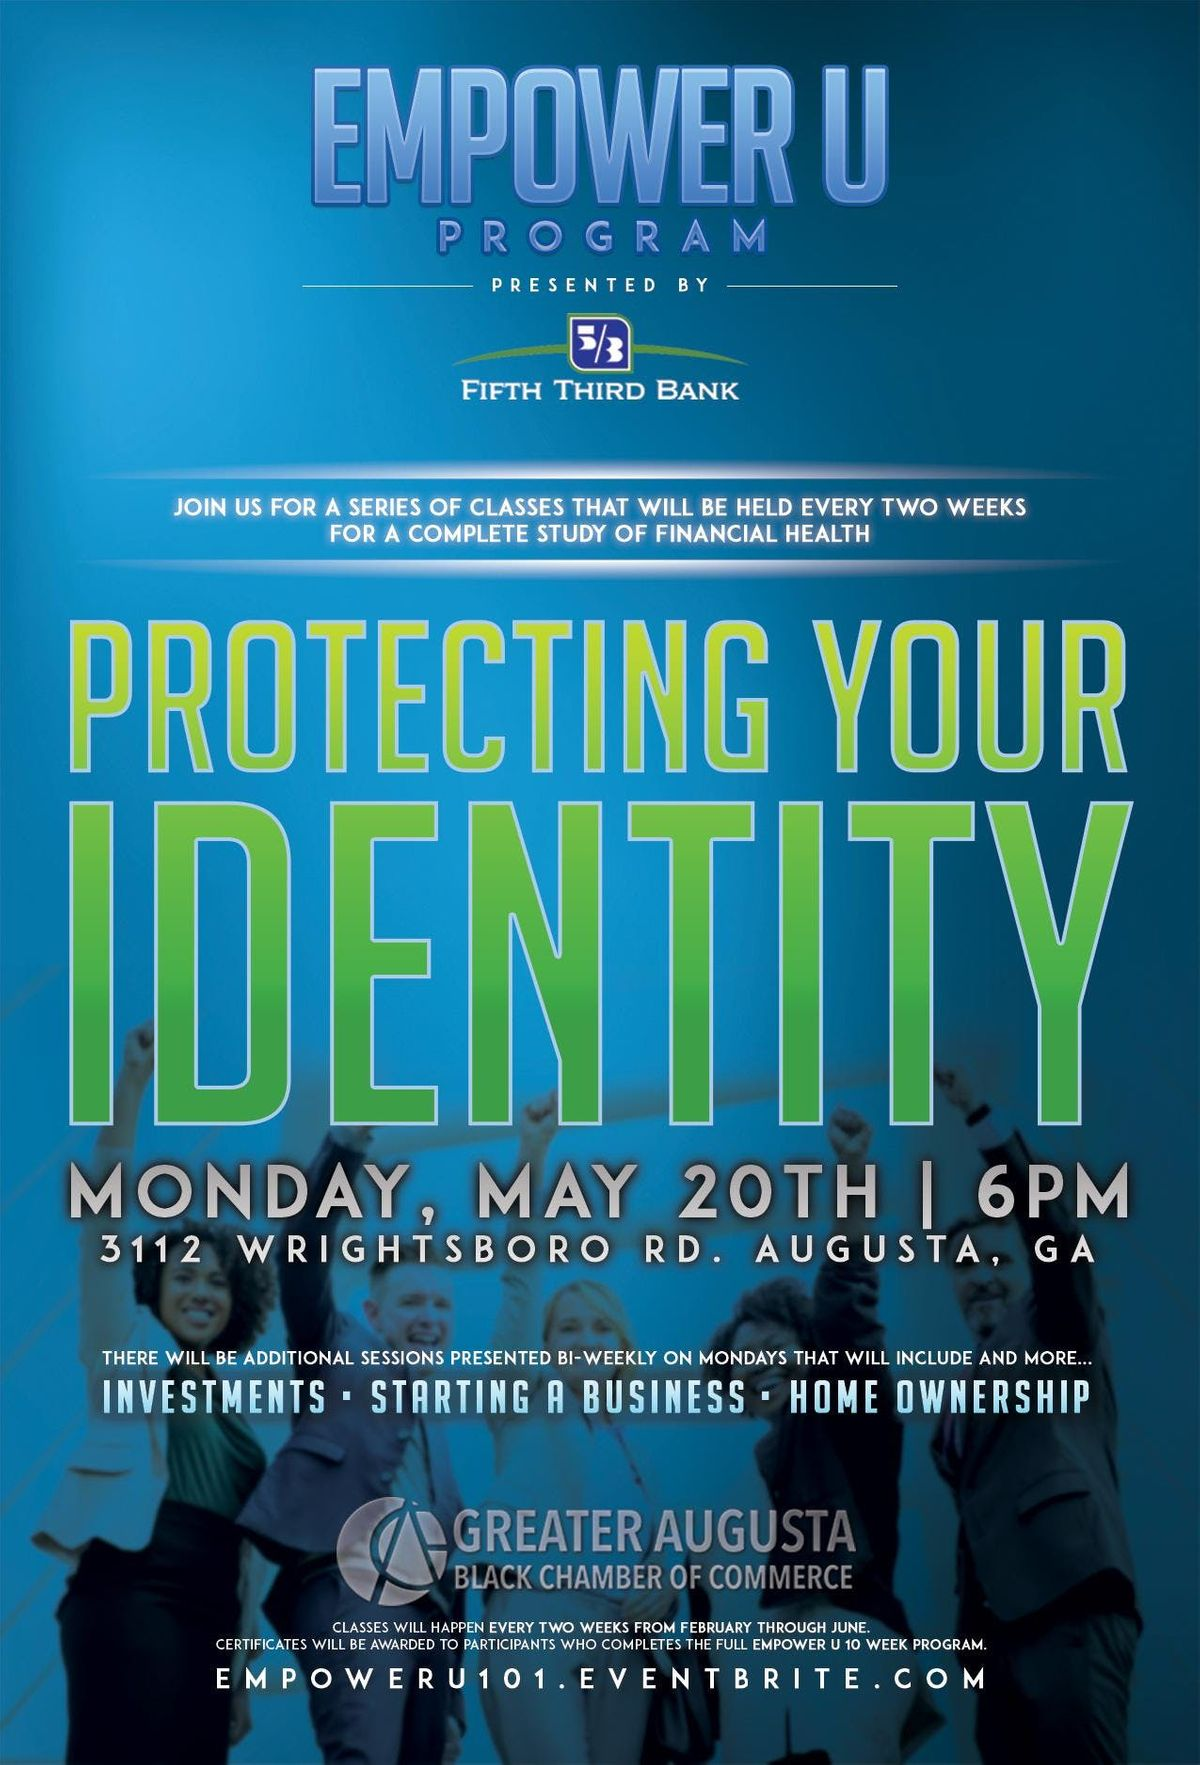 Empower U Program Protecting Your Identity presented by Fifth Third Bank